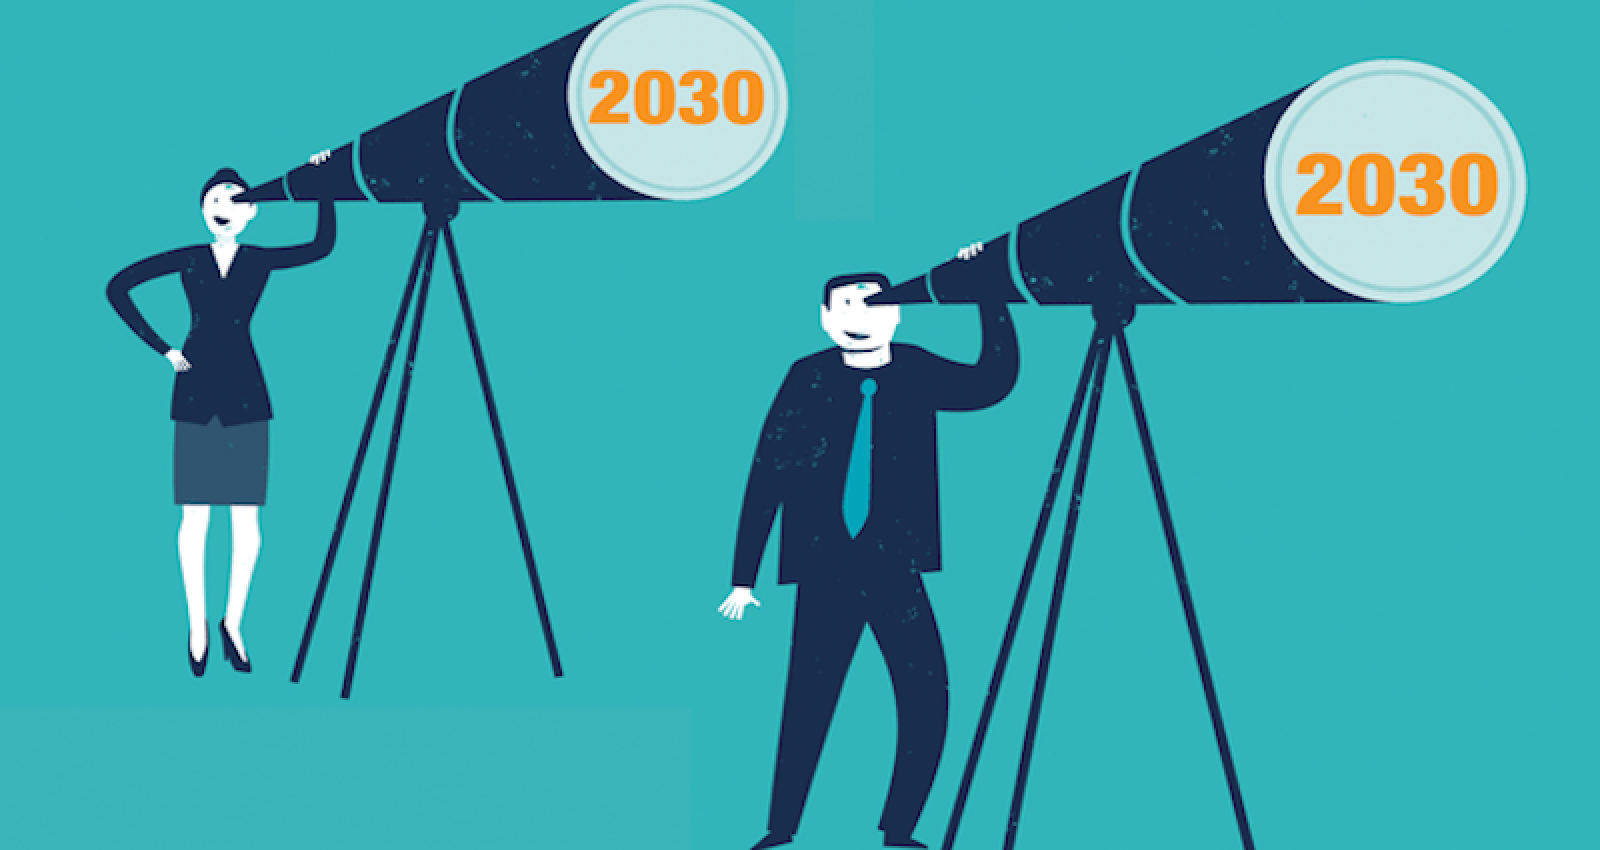 Evaluation 2030 - What Does the Future Look Like?